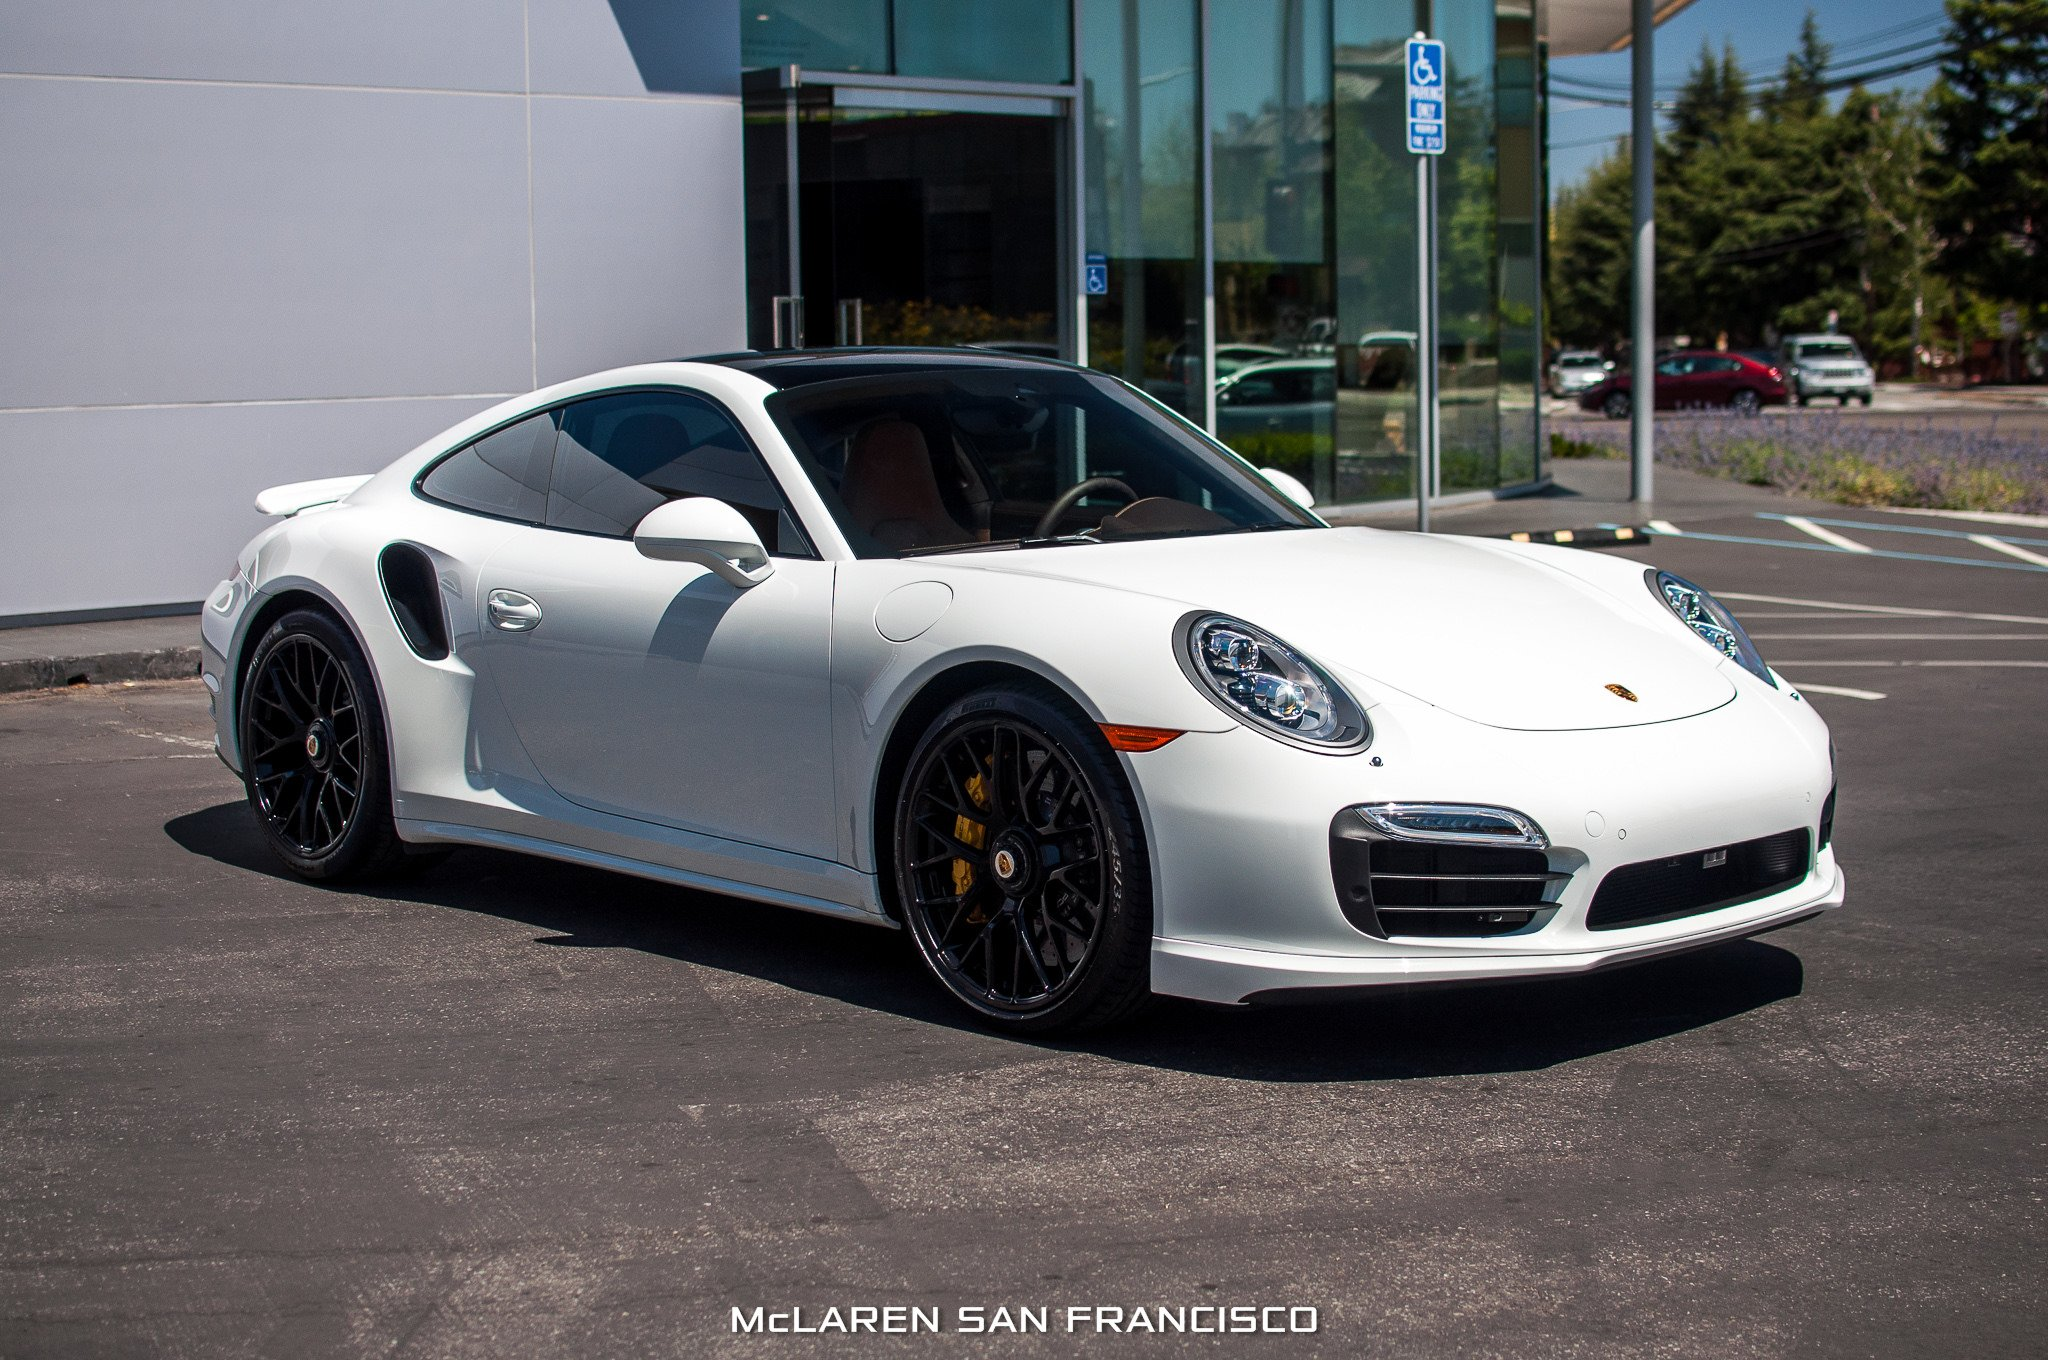 2015 porsche 911 turbos coupe cars white wallpaper 2048x1360 686528 wallpaperup